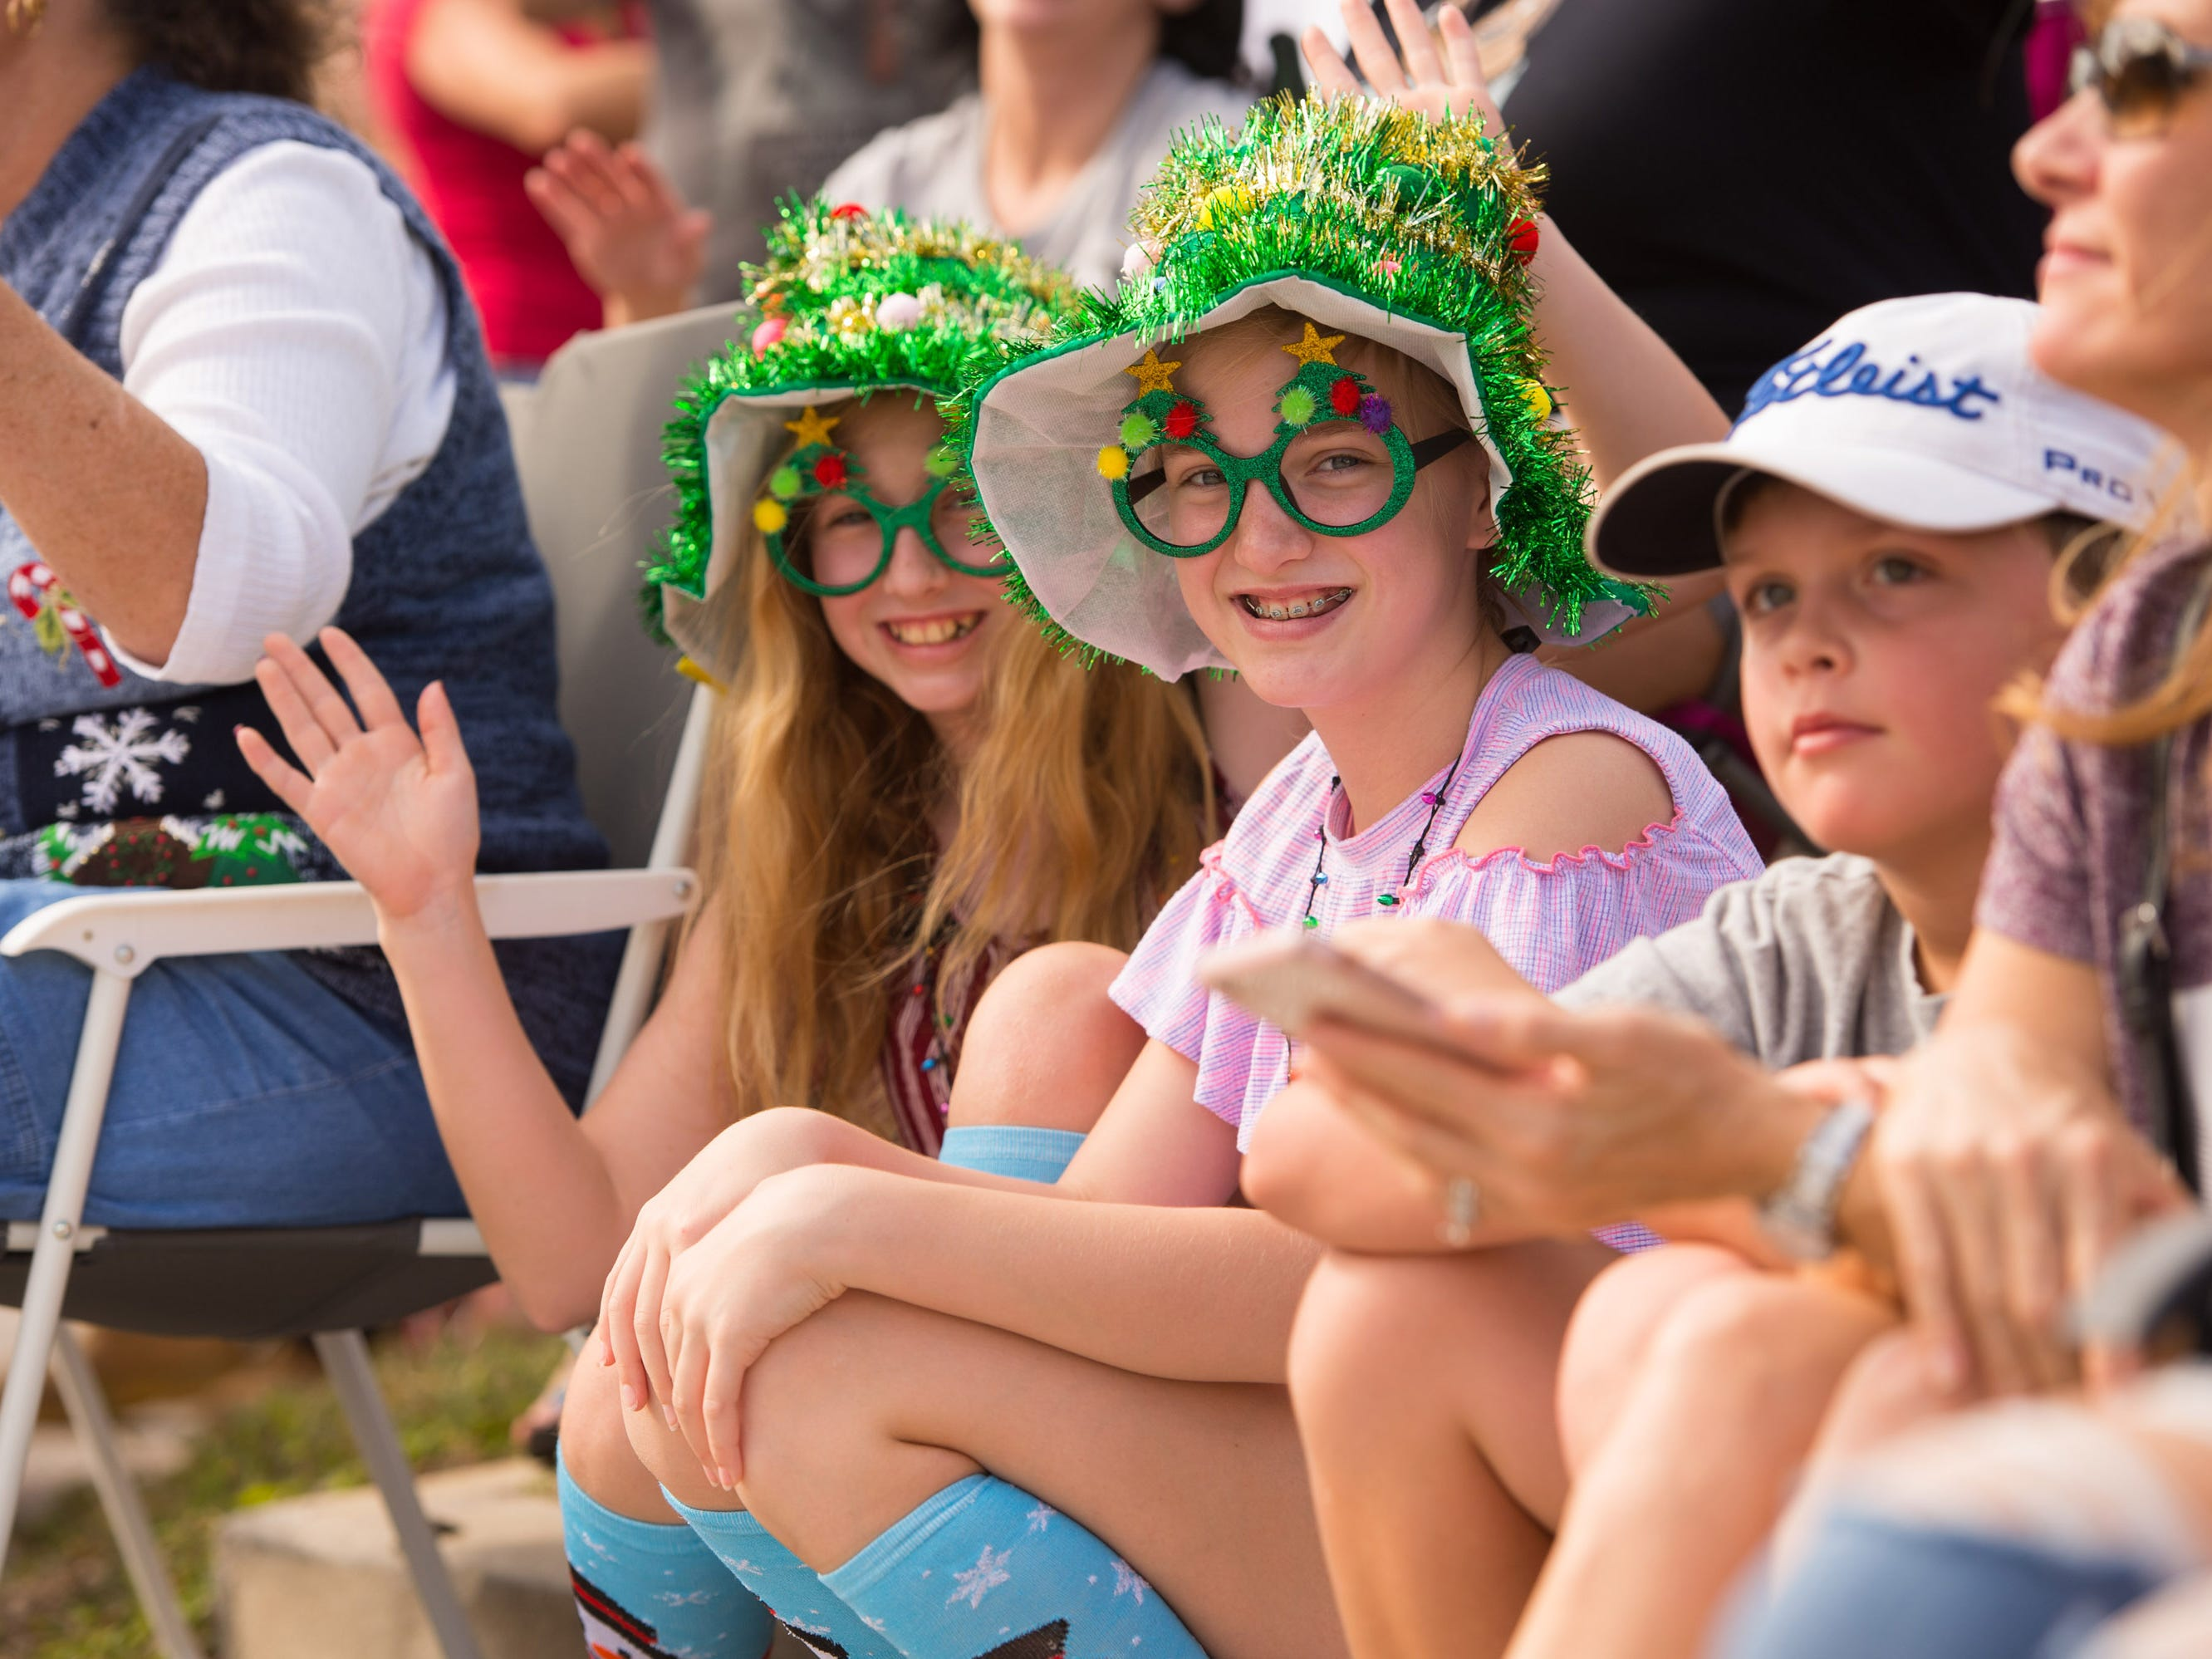 """Ayla Thieme, 12, (left) and her friend Caroline Fisher, 12, both of Stuart, watch the 33rd annual Hobe Sound Christmas Parade on Saturday, Dec. 1, 2018 in Hobe Sound. """"We are having fun,"""" said Thieme adding, """"It's the best time of the year."""" The event included 1,500 parade participants and a craft stroll."""